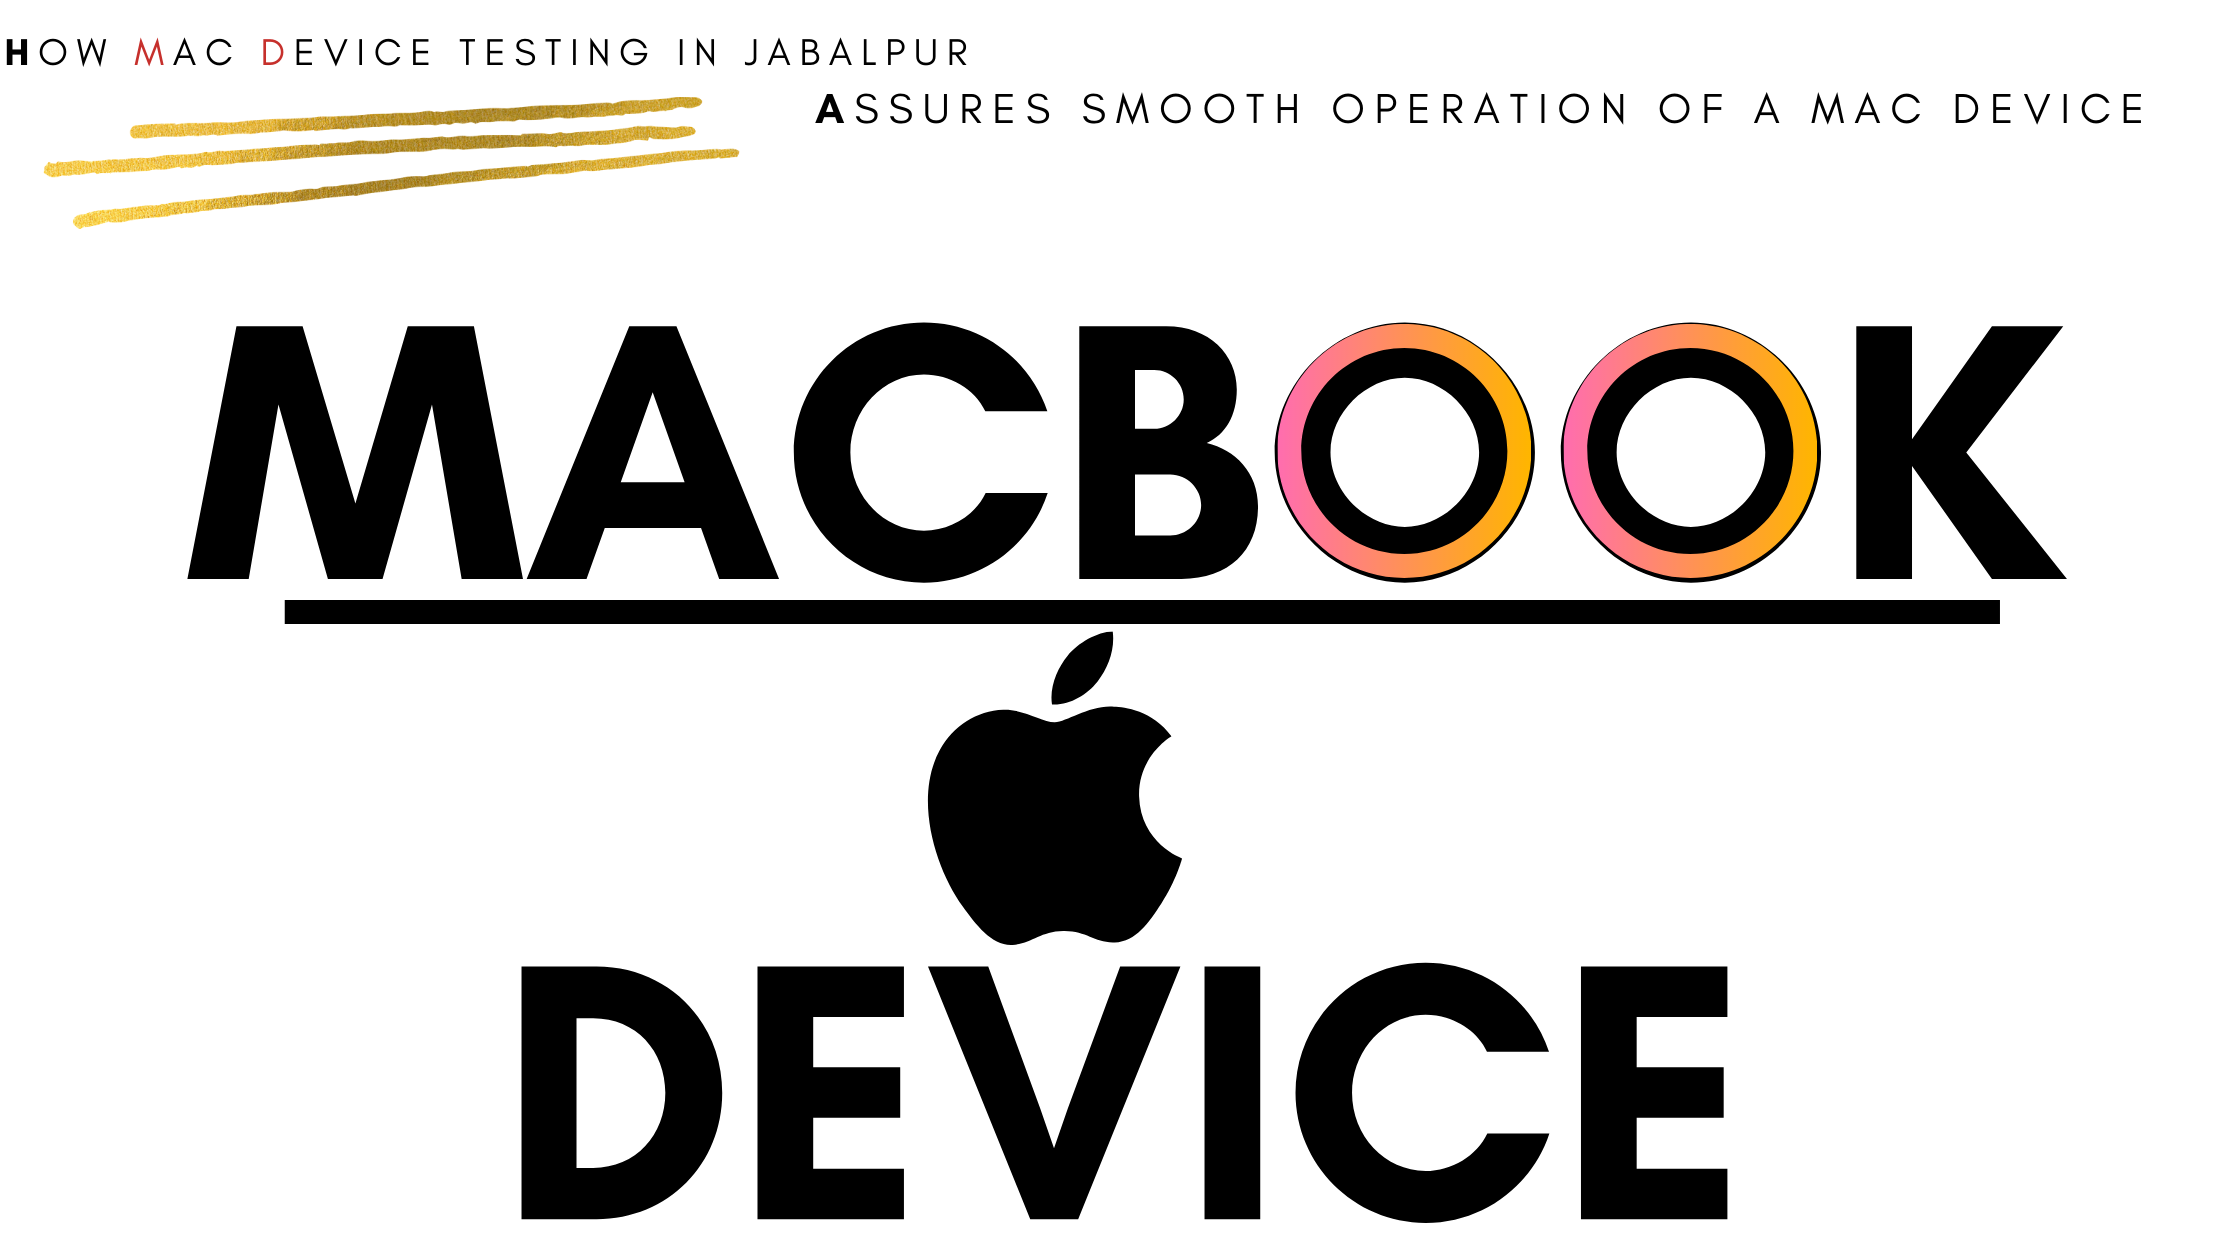 How Mac Device Testing in Jabalpur Assures Billion Smooth Operation of a Mac Device